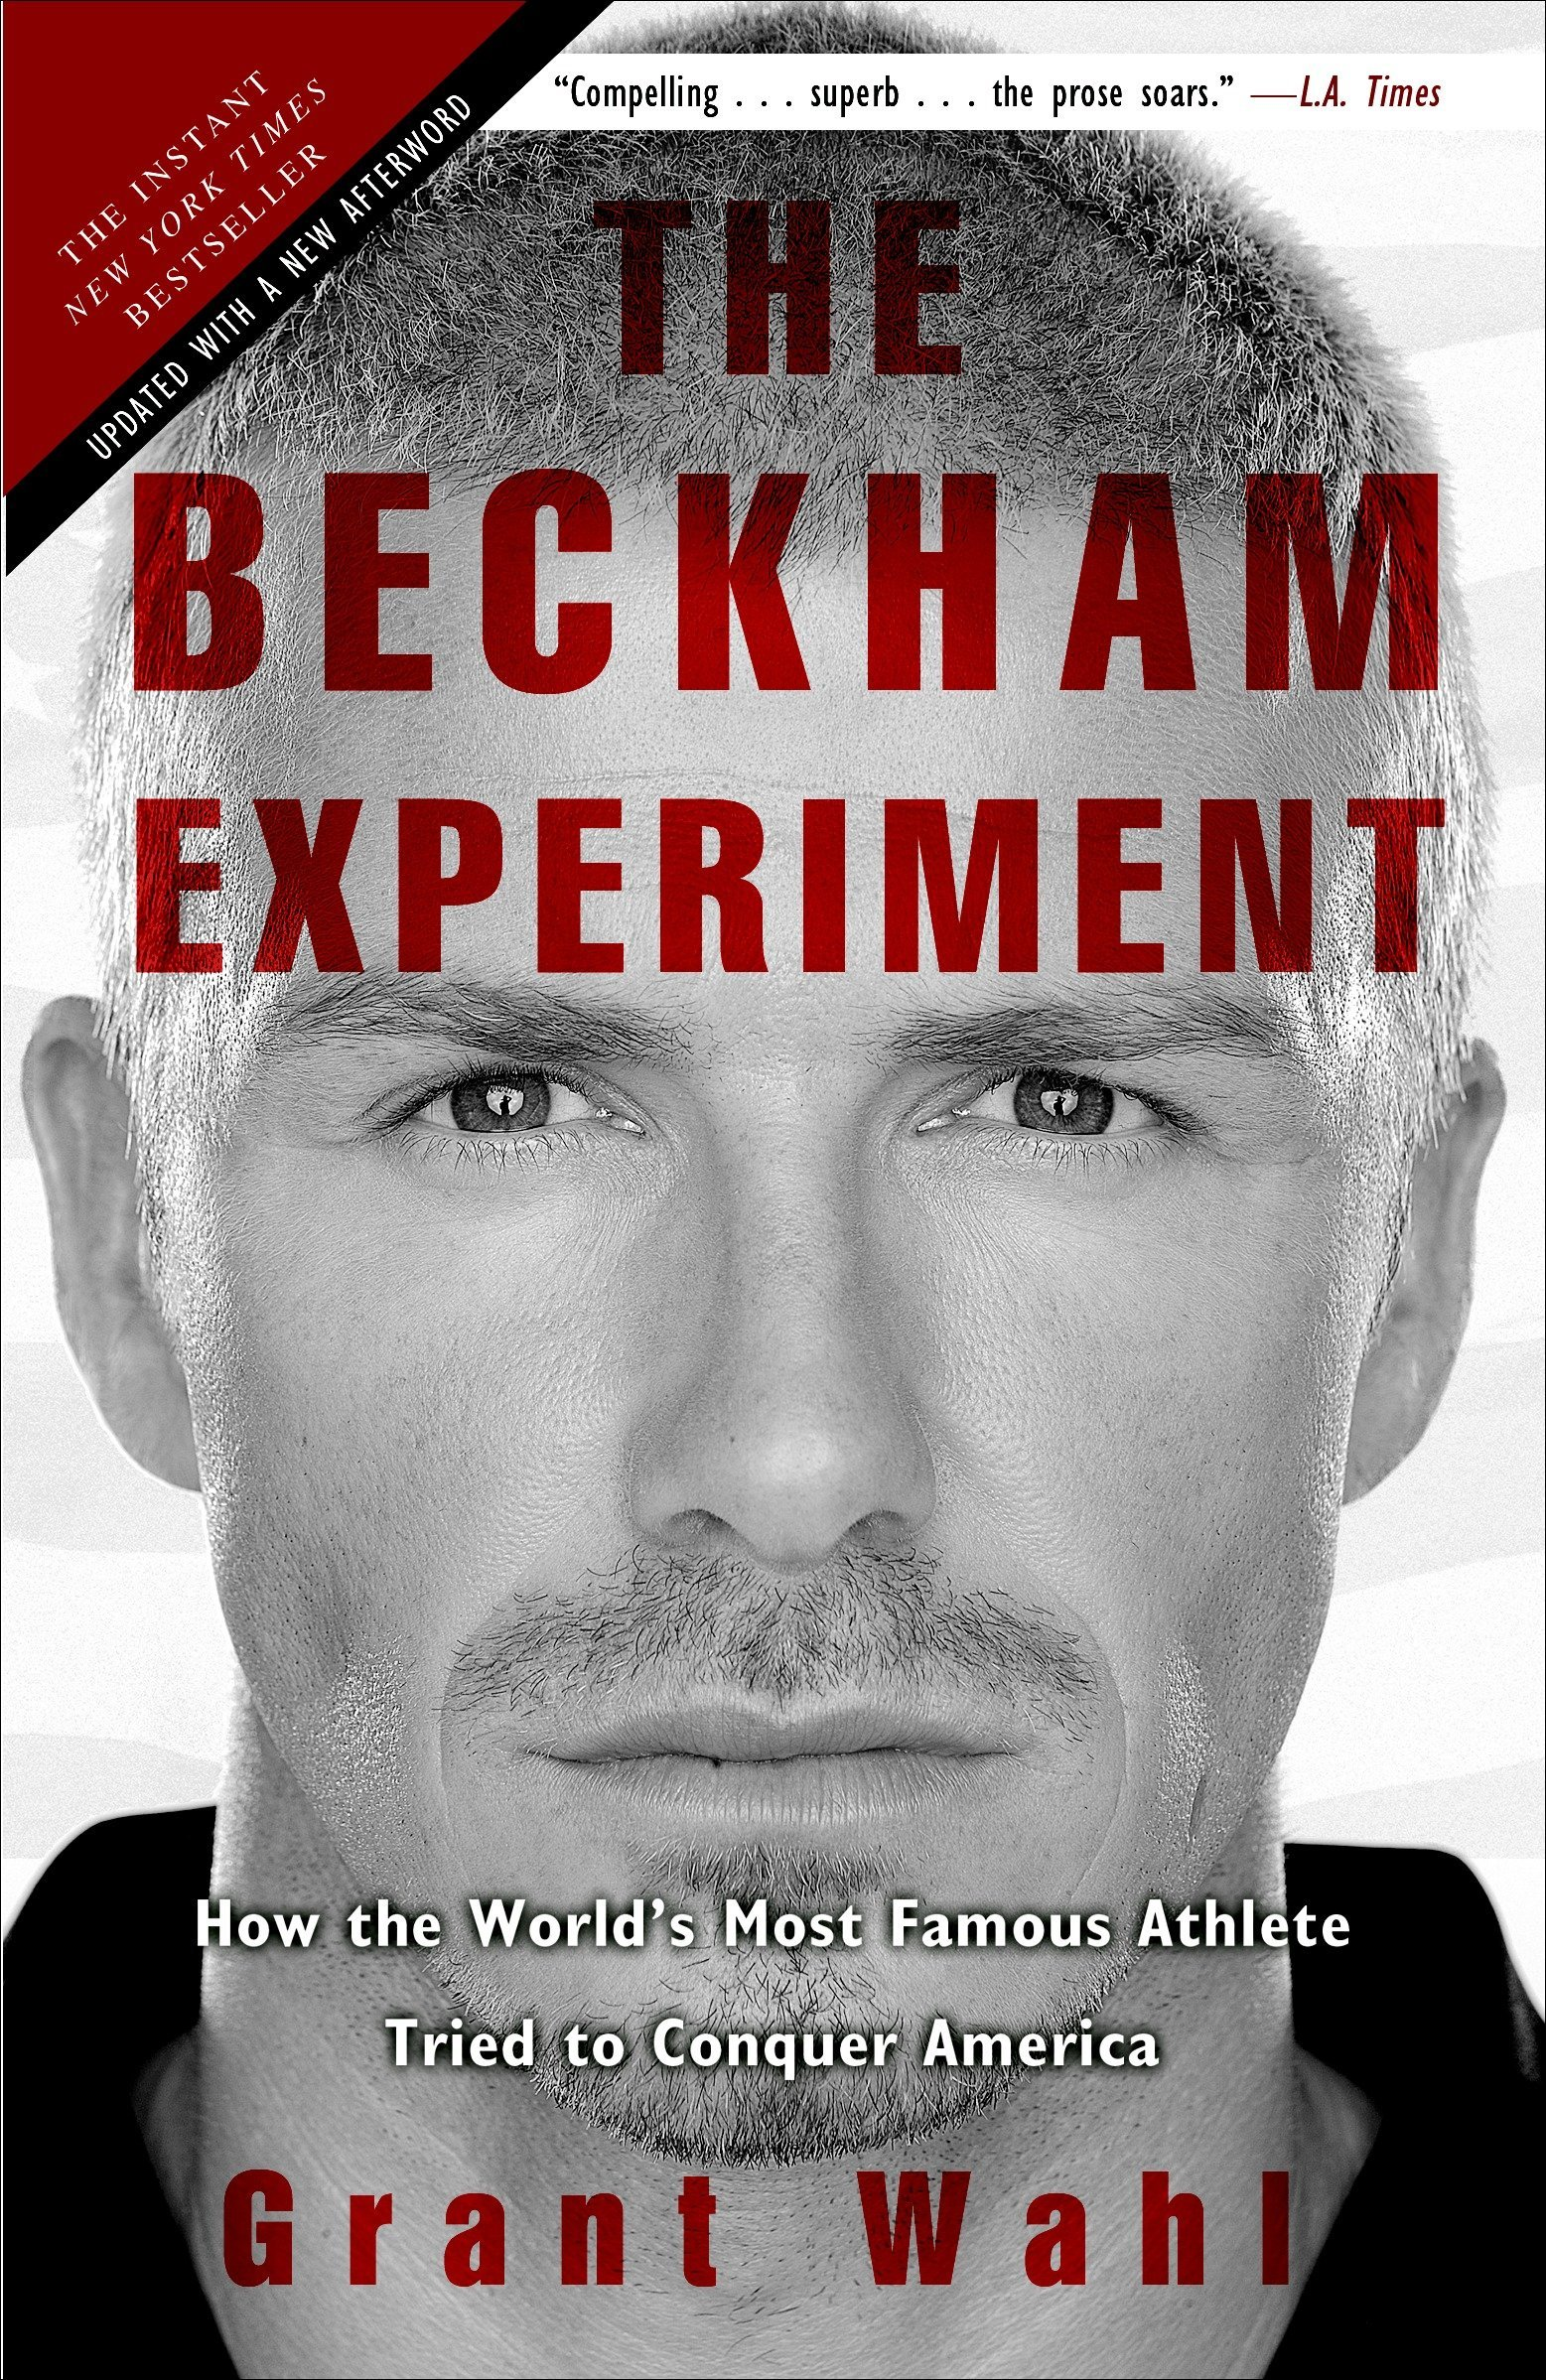 7c82bc9bacc2 The Beckham Experiment: How the World's Most Famous Athlete Tried to ...